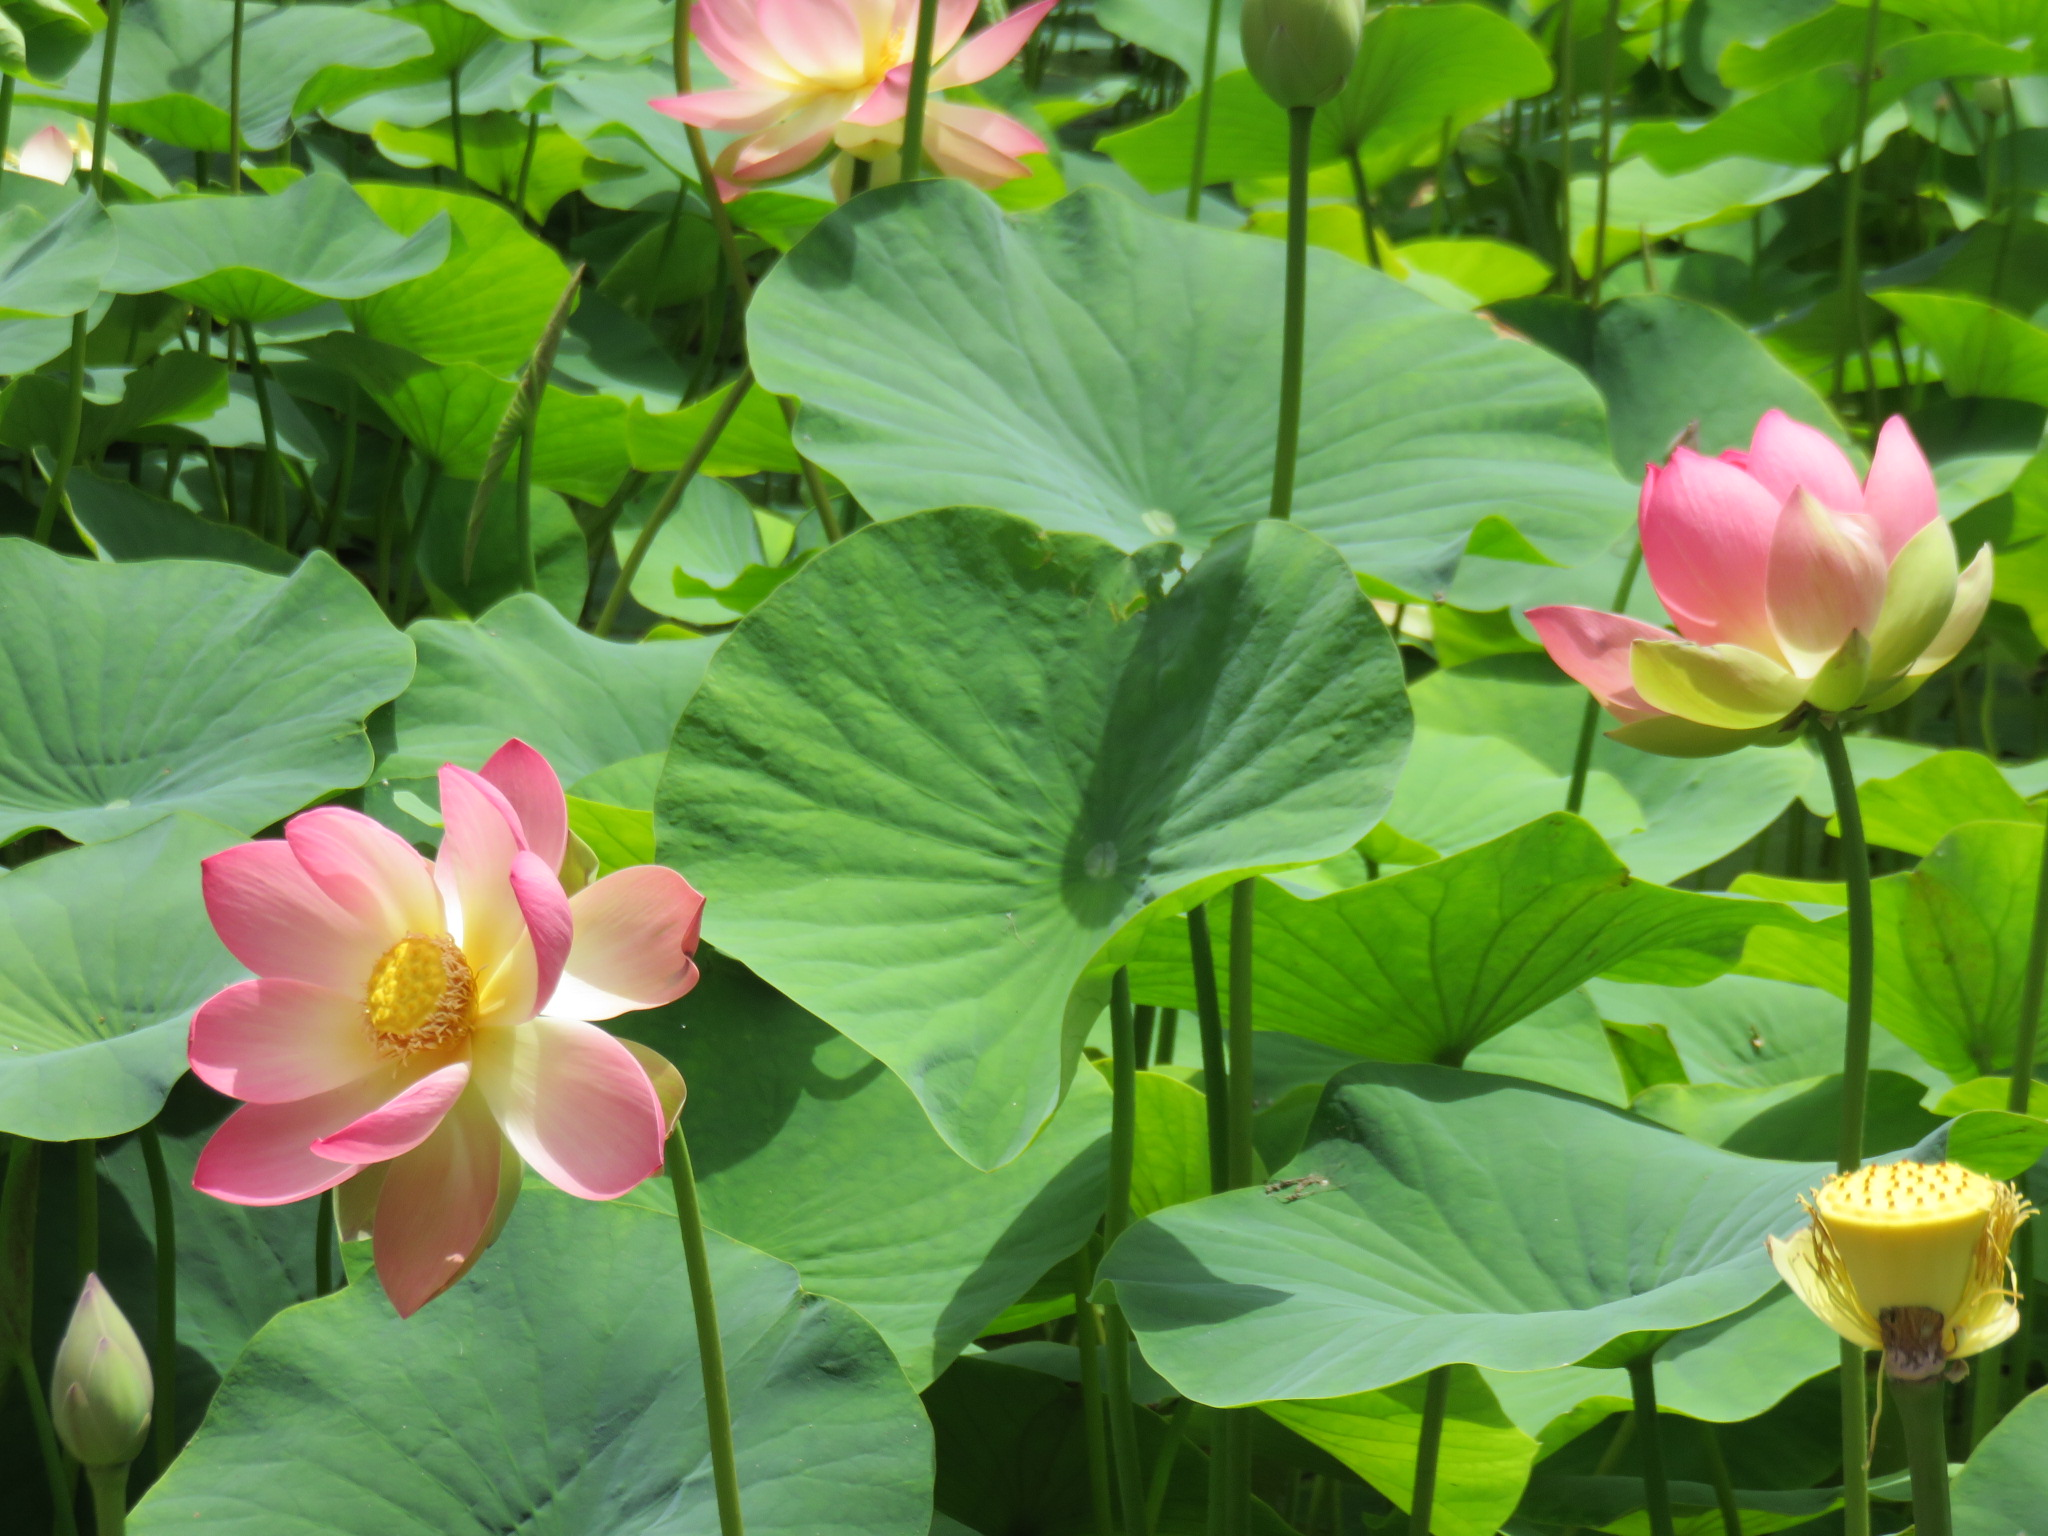 lotuslandlotusflower.JPG